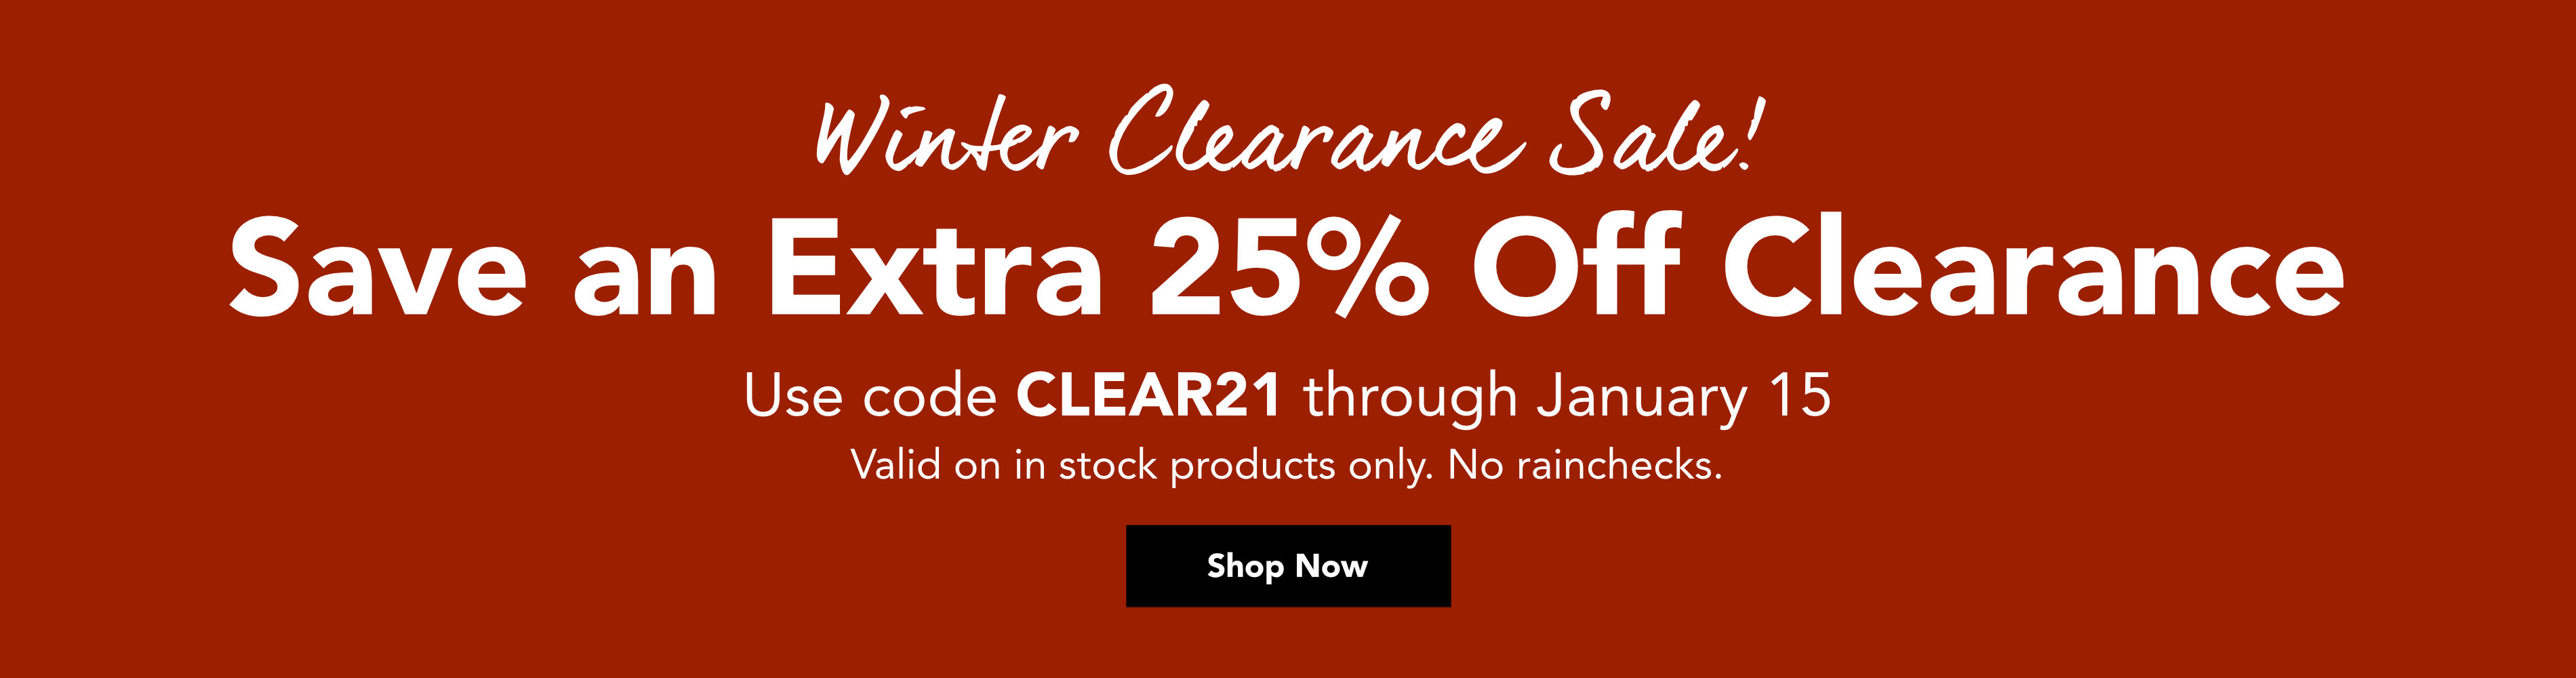 Winter Clearance Sale! Save an Extra 25% Off Clearance with code CLEAR21 through January 15. Valid on in stock products only. No rainchecks. Shop Now >